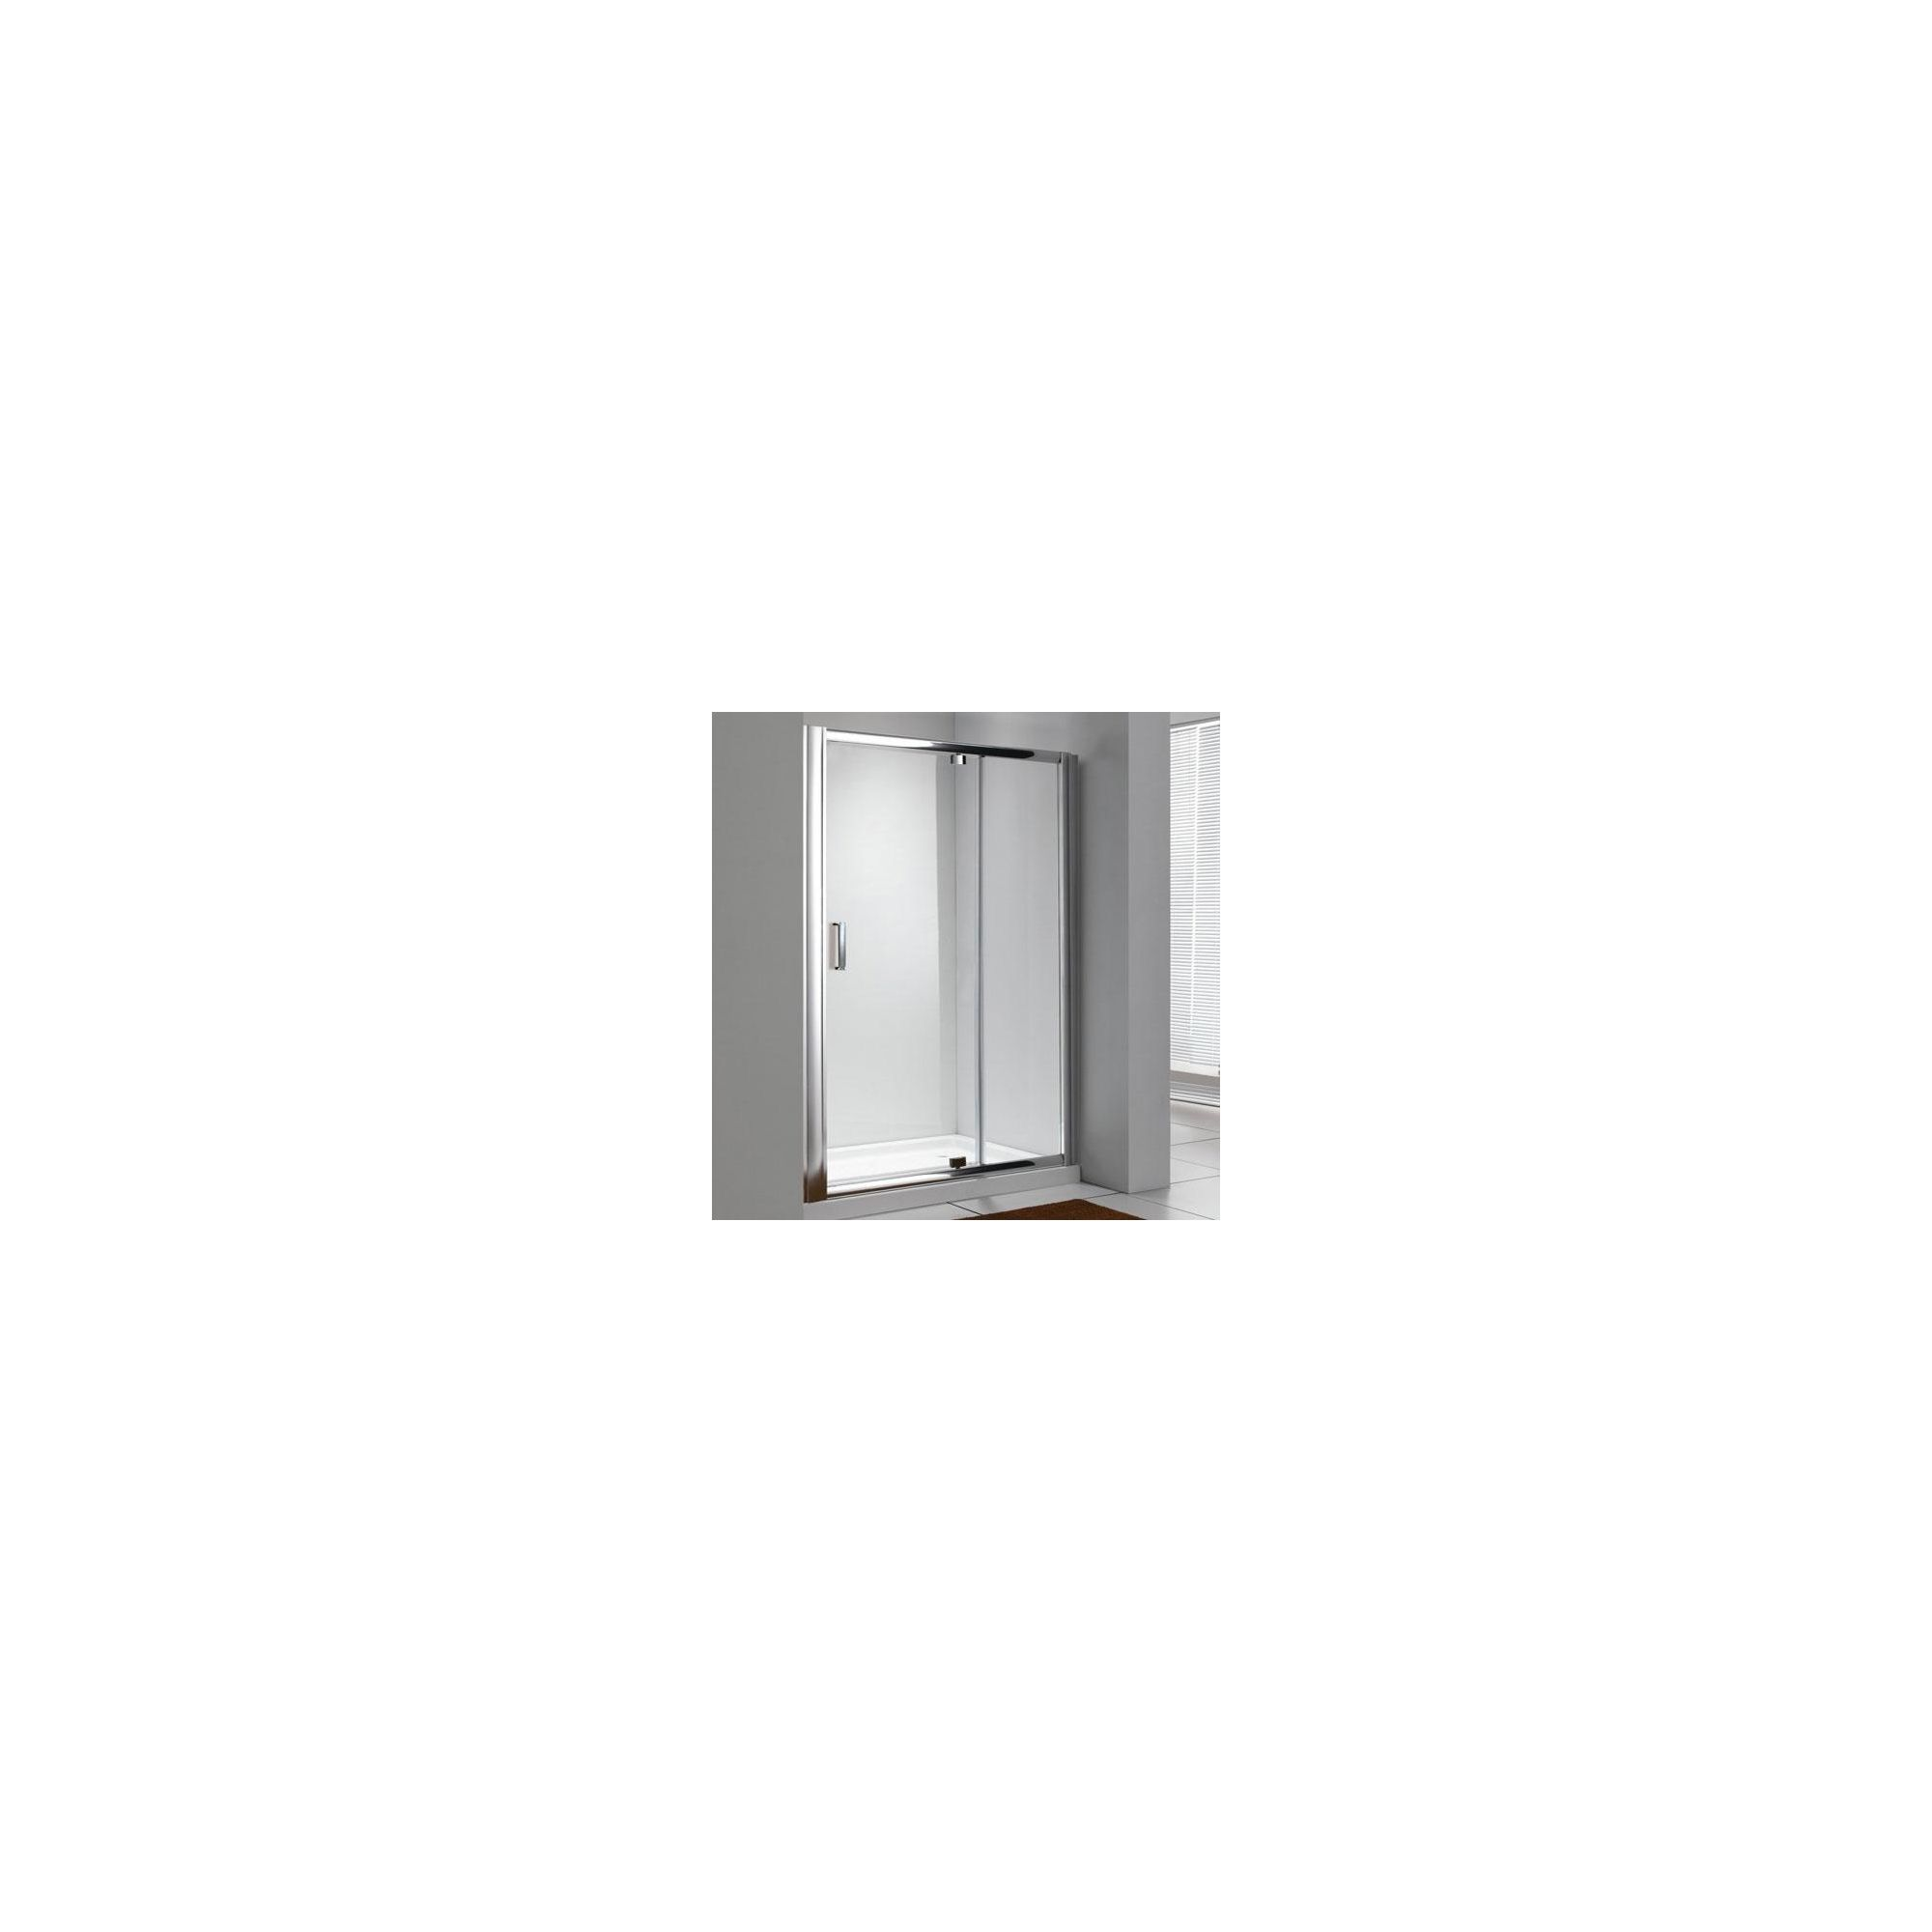 Duchy Style Pivot Door Shower Enclosure, 900mm x 800mm, 6mm Glass, Low Profile Tray at Tesco Direct